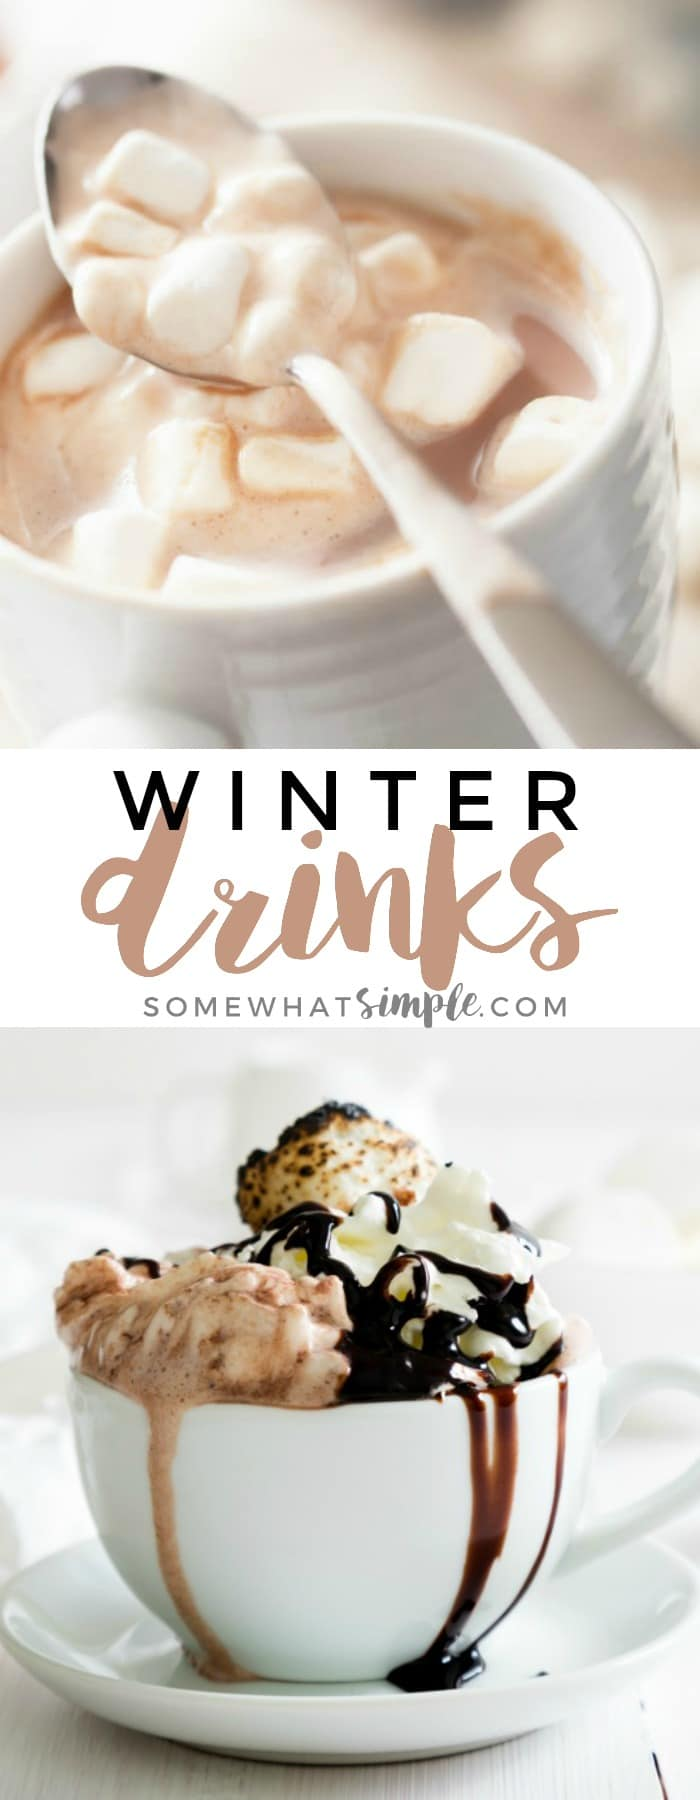 From caramel apple cider to gingerbread hot chocolate, these delicious winter drinks are bound to keep you warm and satisfied during these colder winter months!